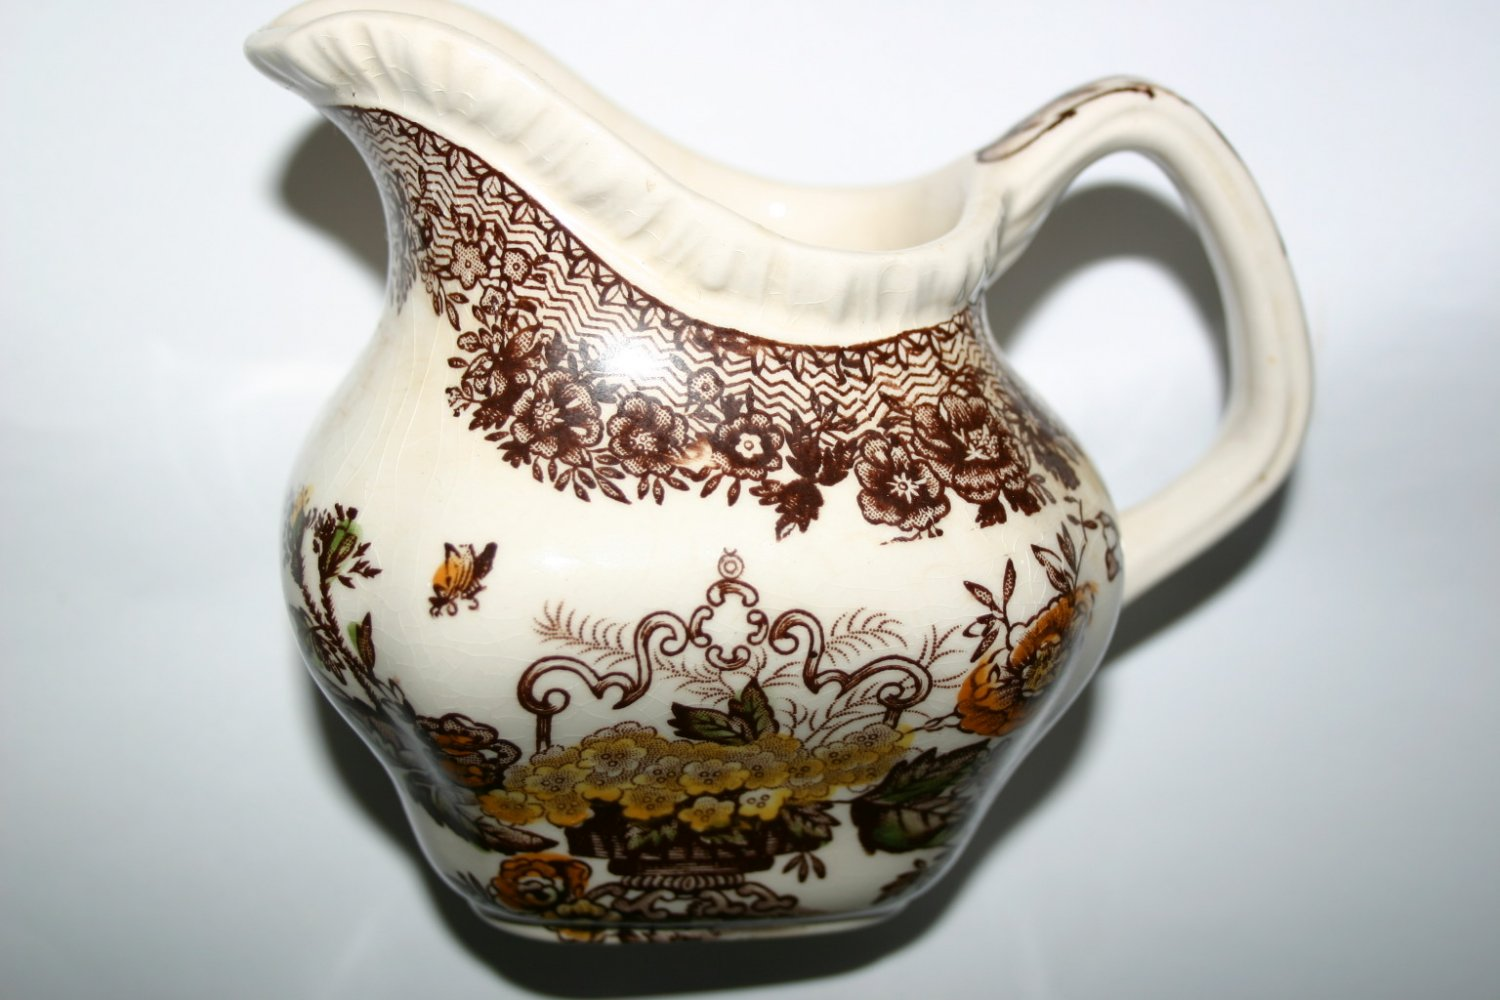 Antique 1820's Masons Ironstone Floral Creamer Jug